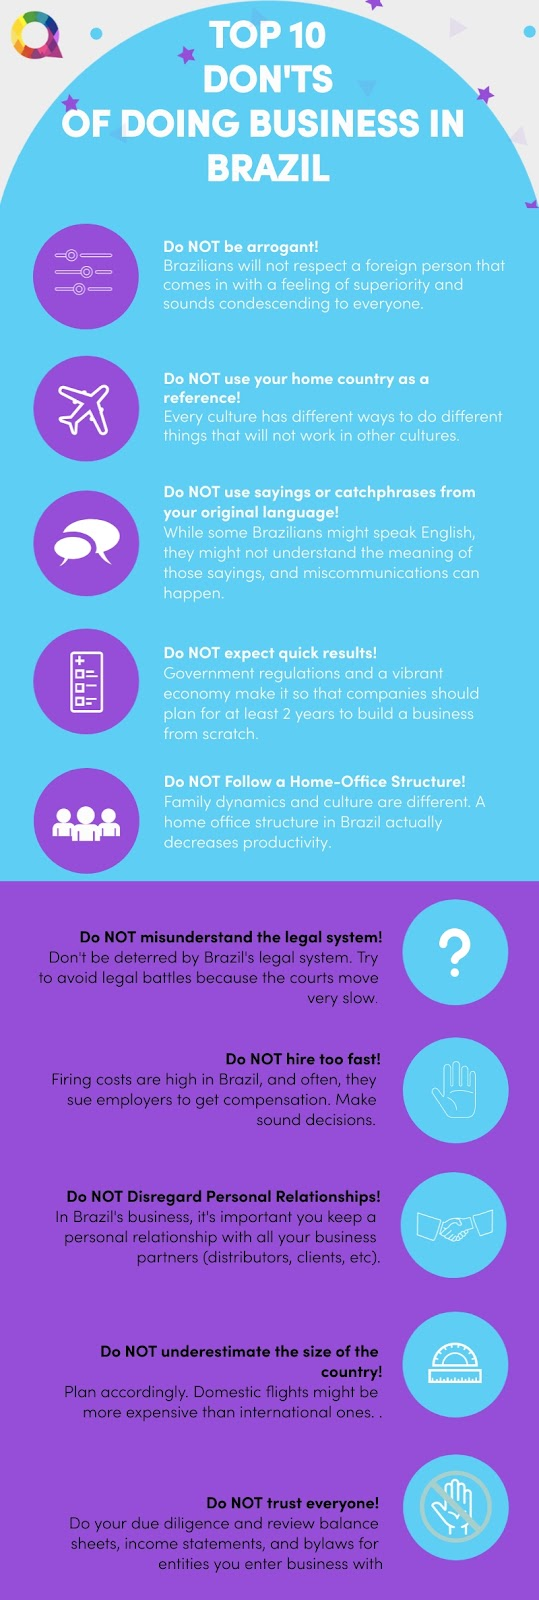 Top 10 Don'ts of Doing Business in Brazil